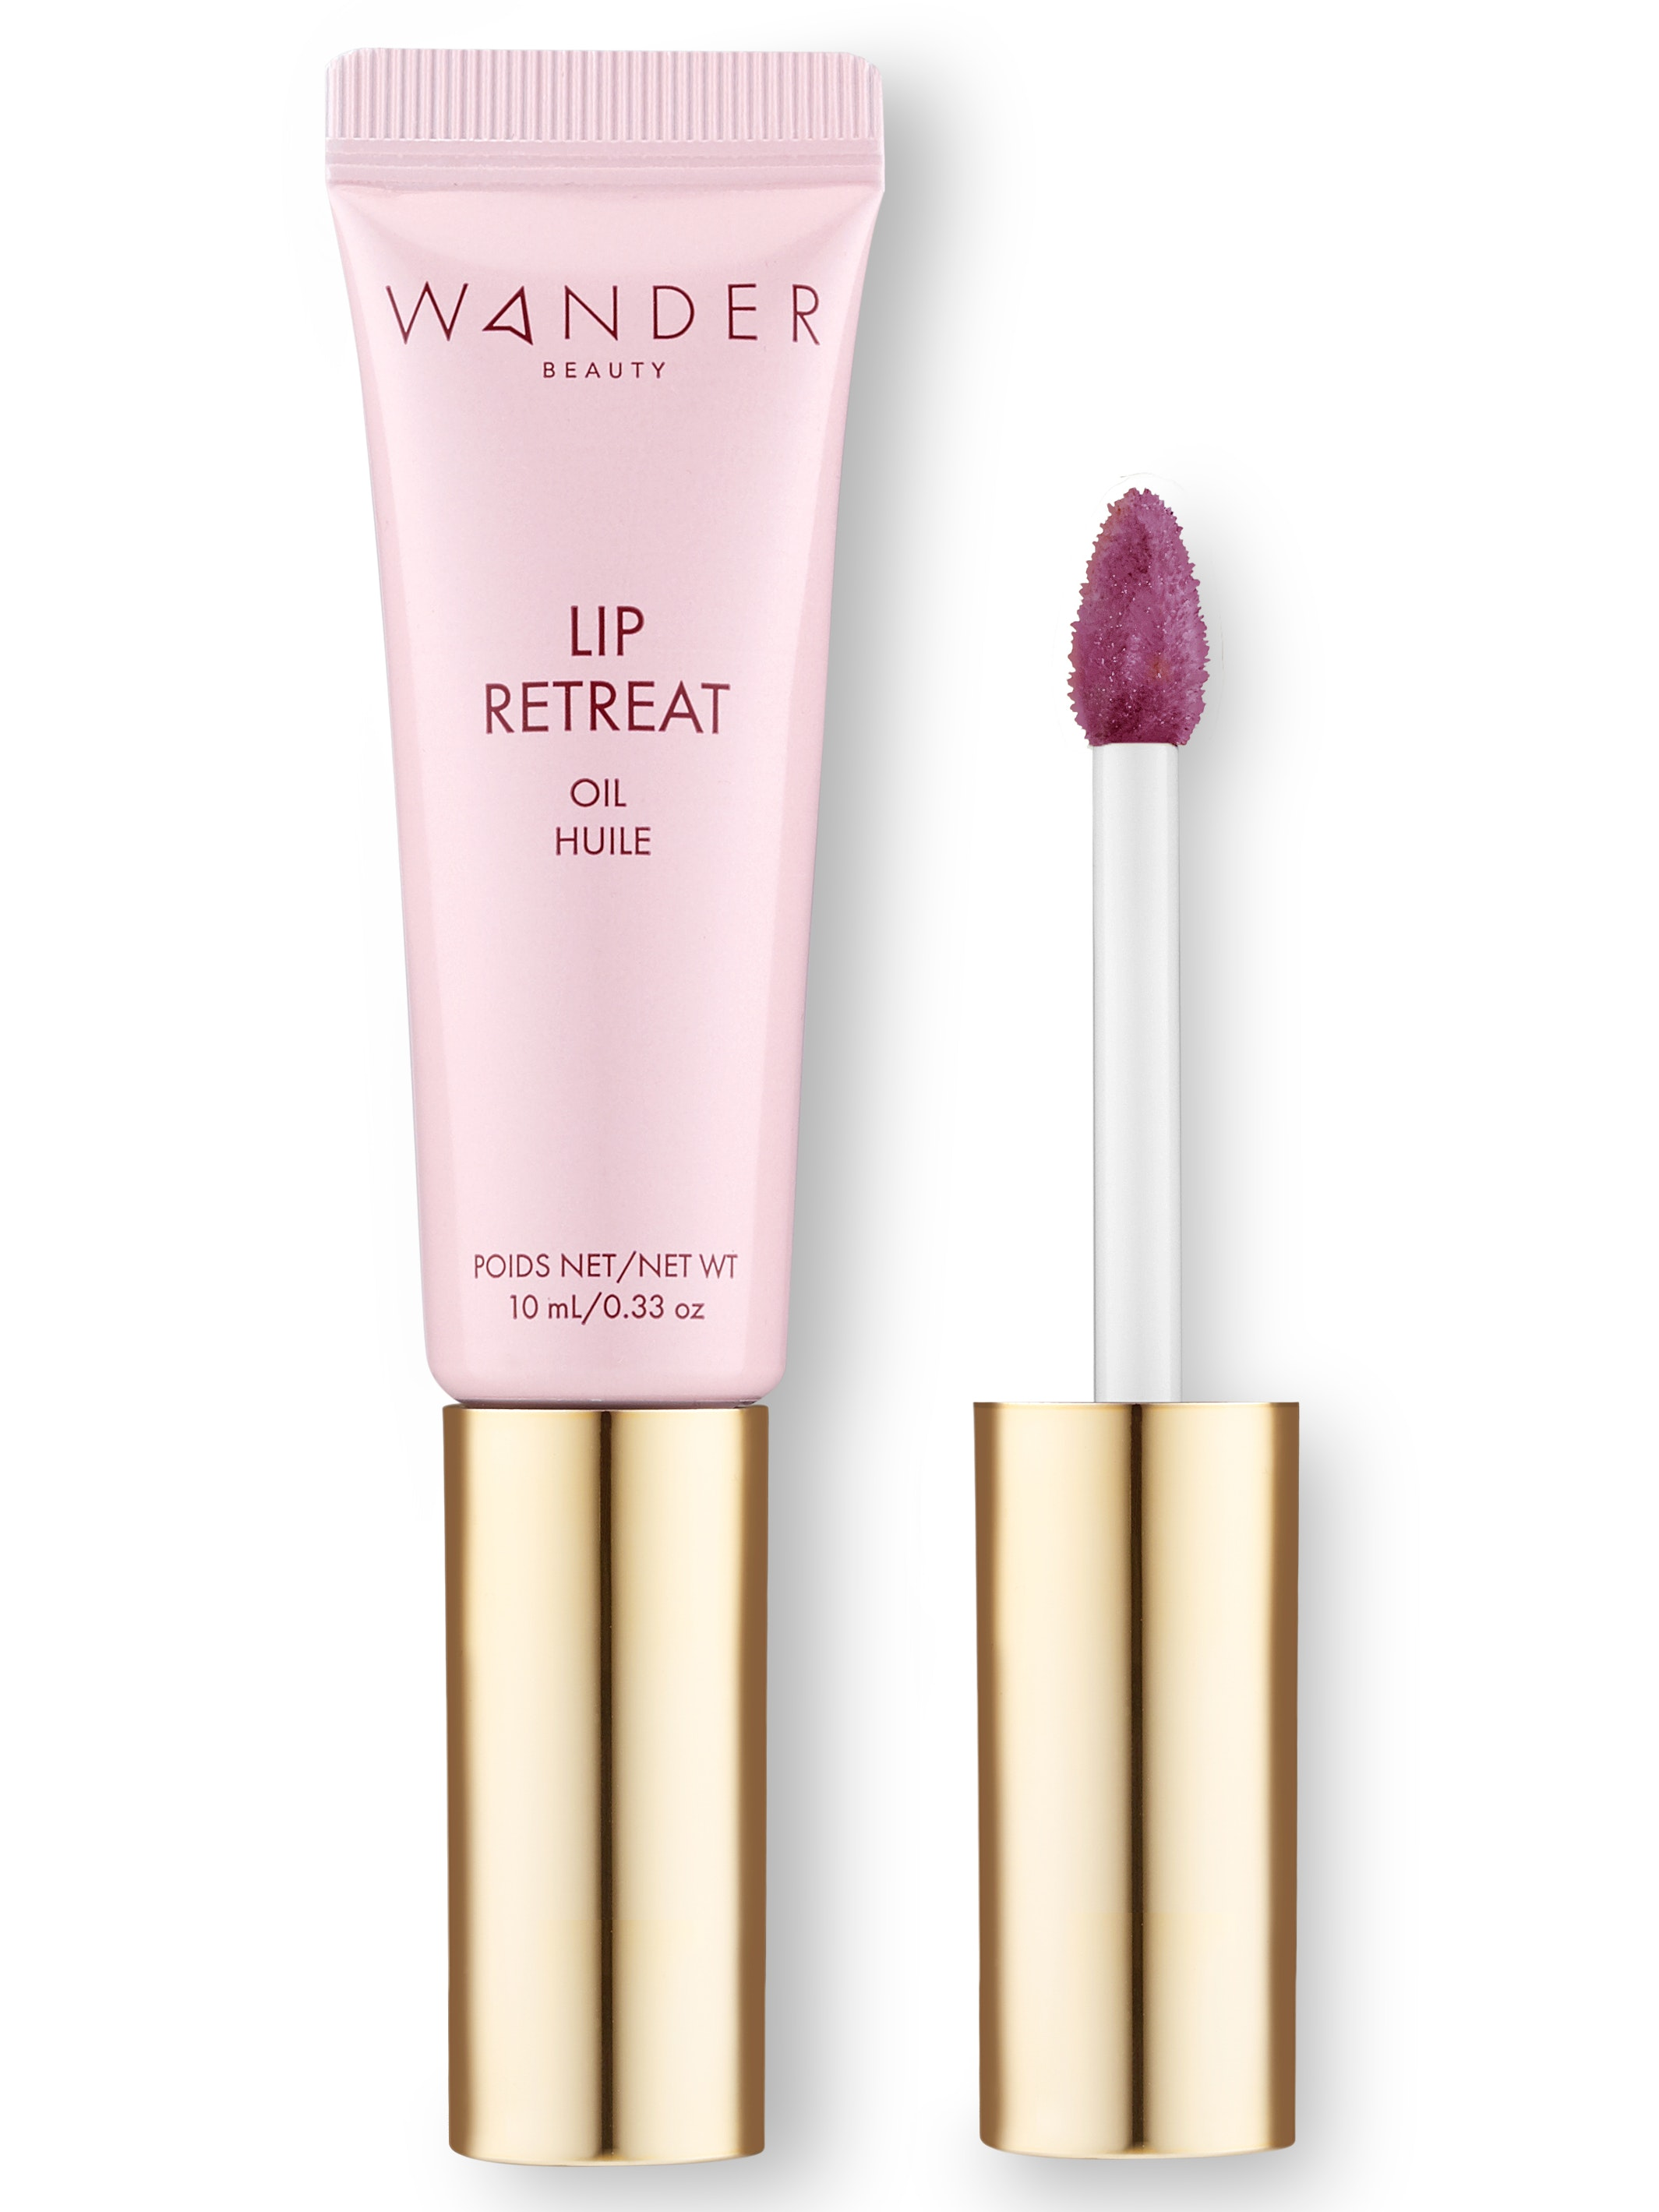 Wander Beauty Lip Retreat